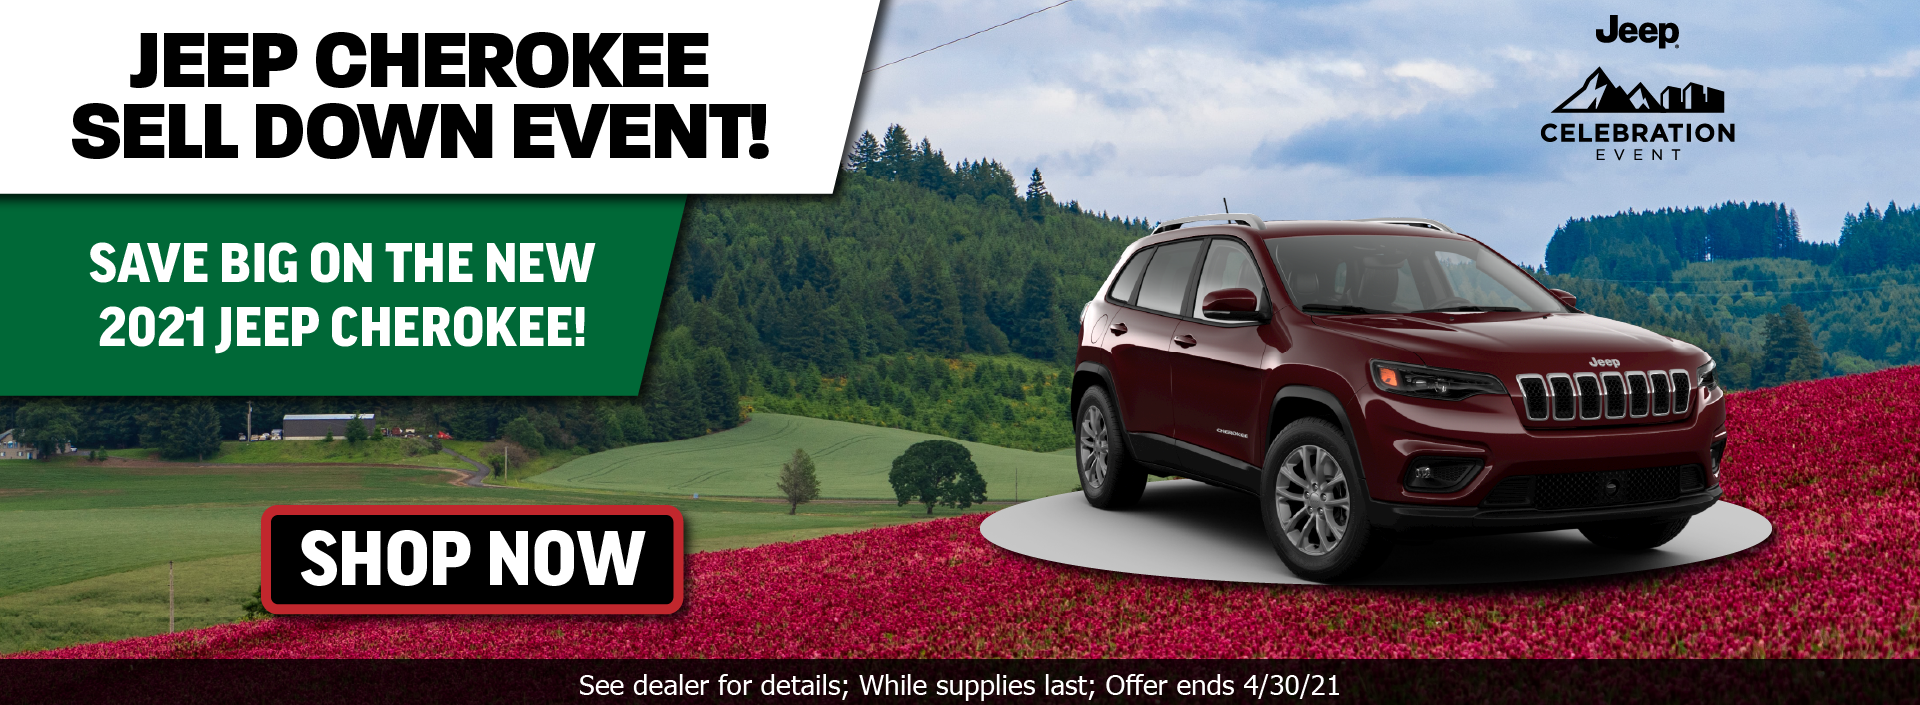 Jeep Cherokee Sell Down April